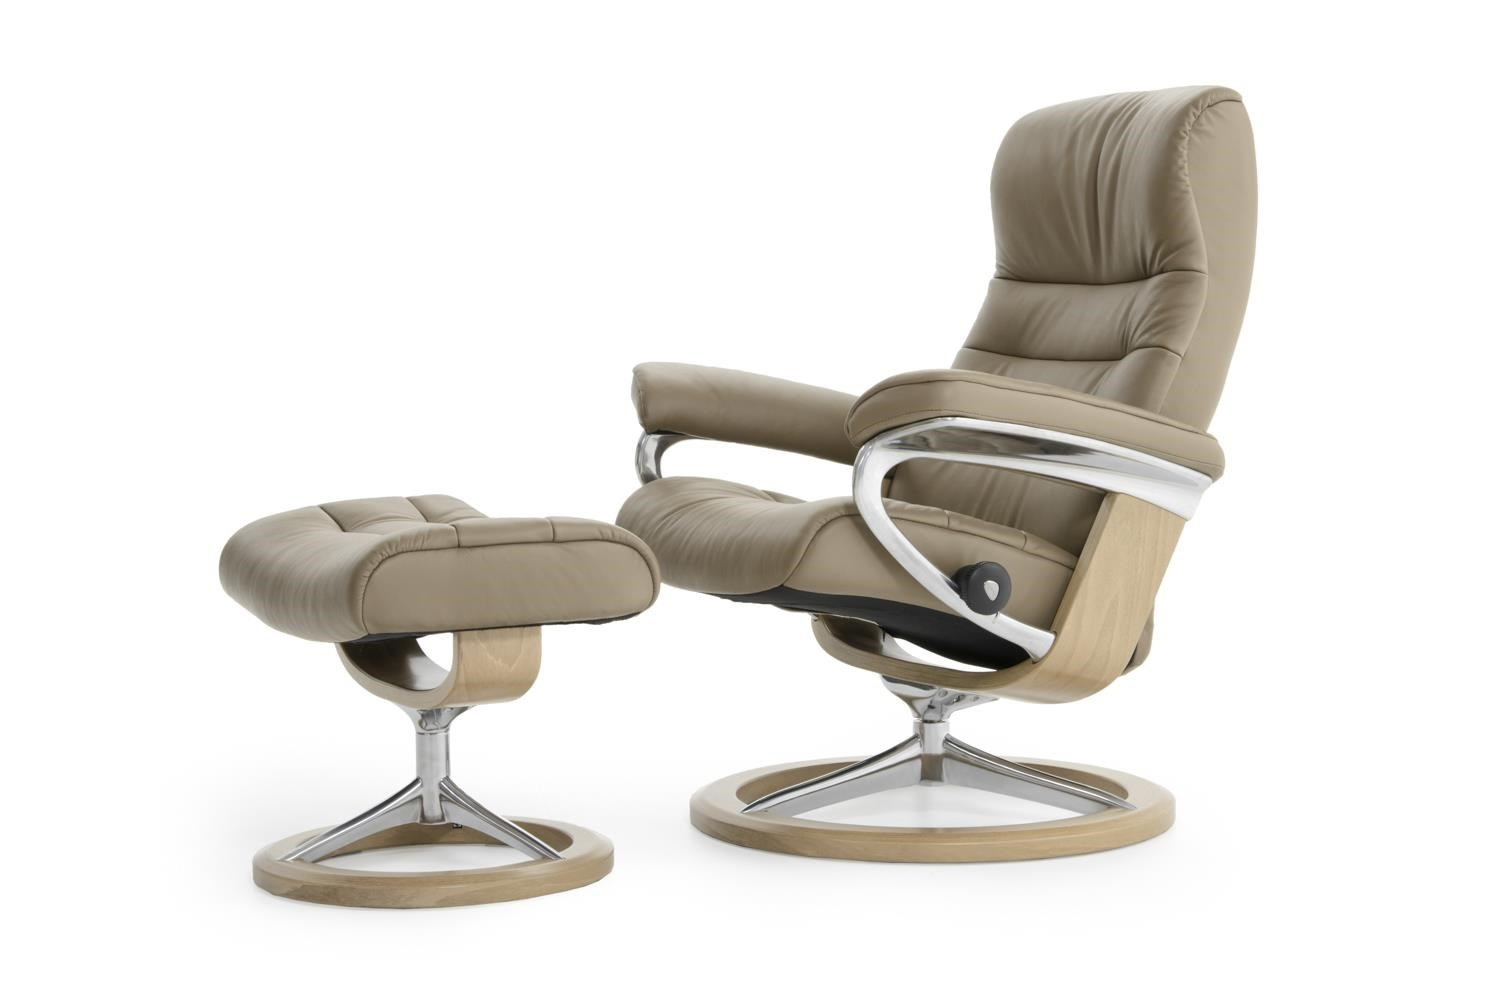 Stressless By Ekornes Stressless Recliners 1255315 Top Base Pal Funghi Medium Opal Signature